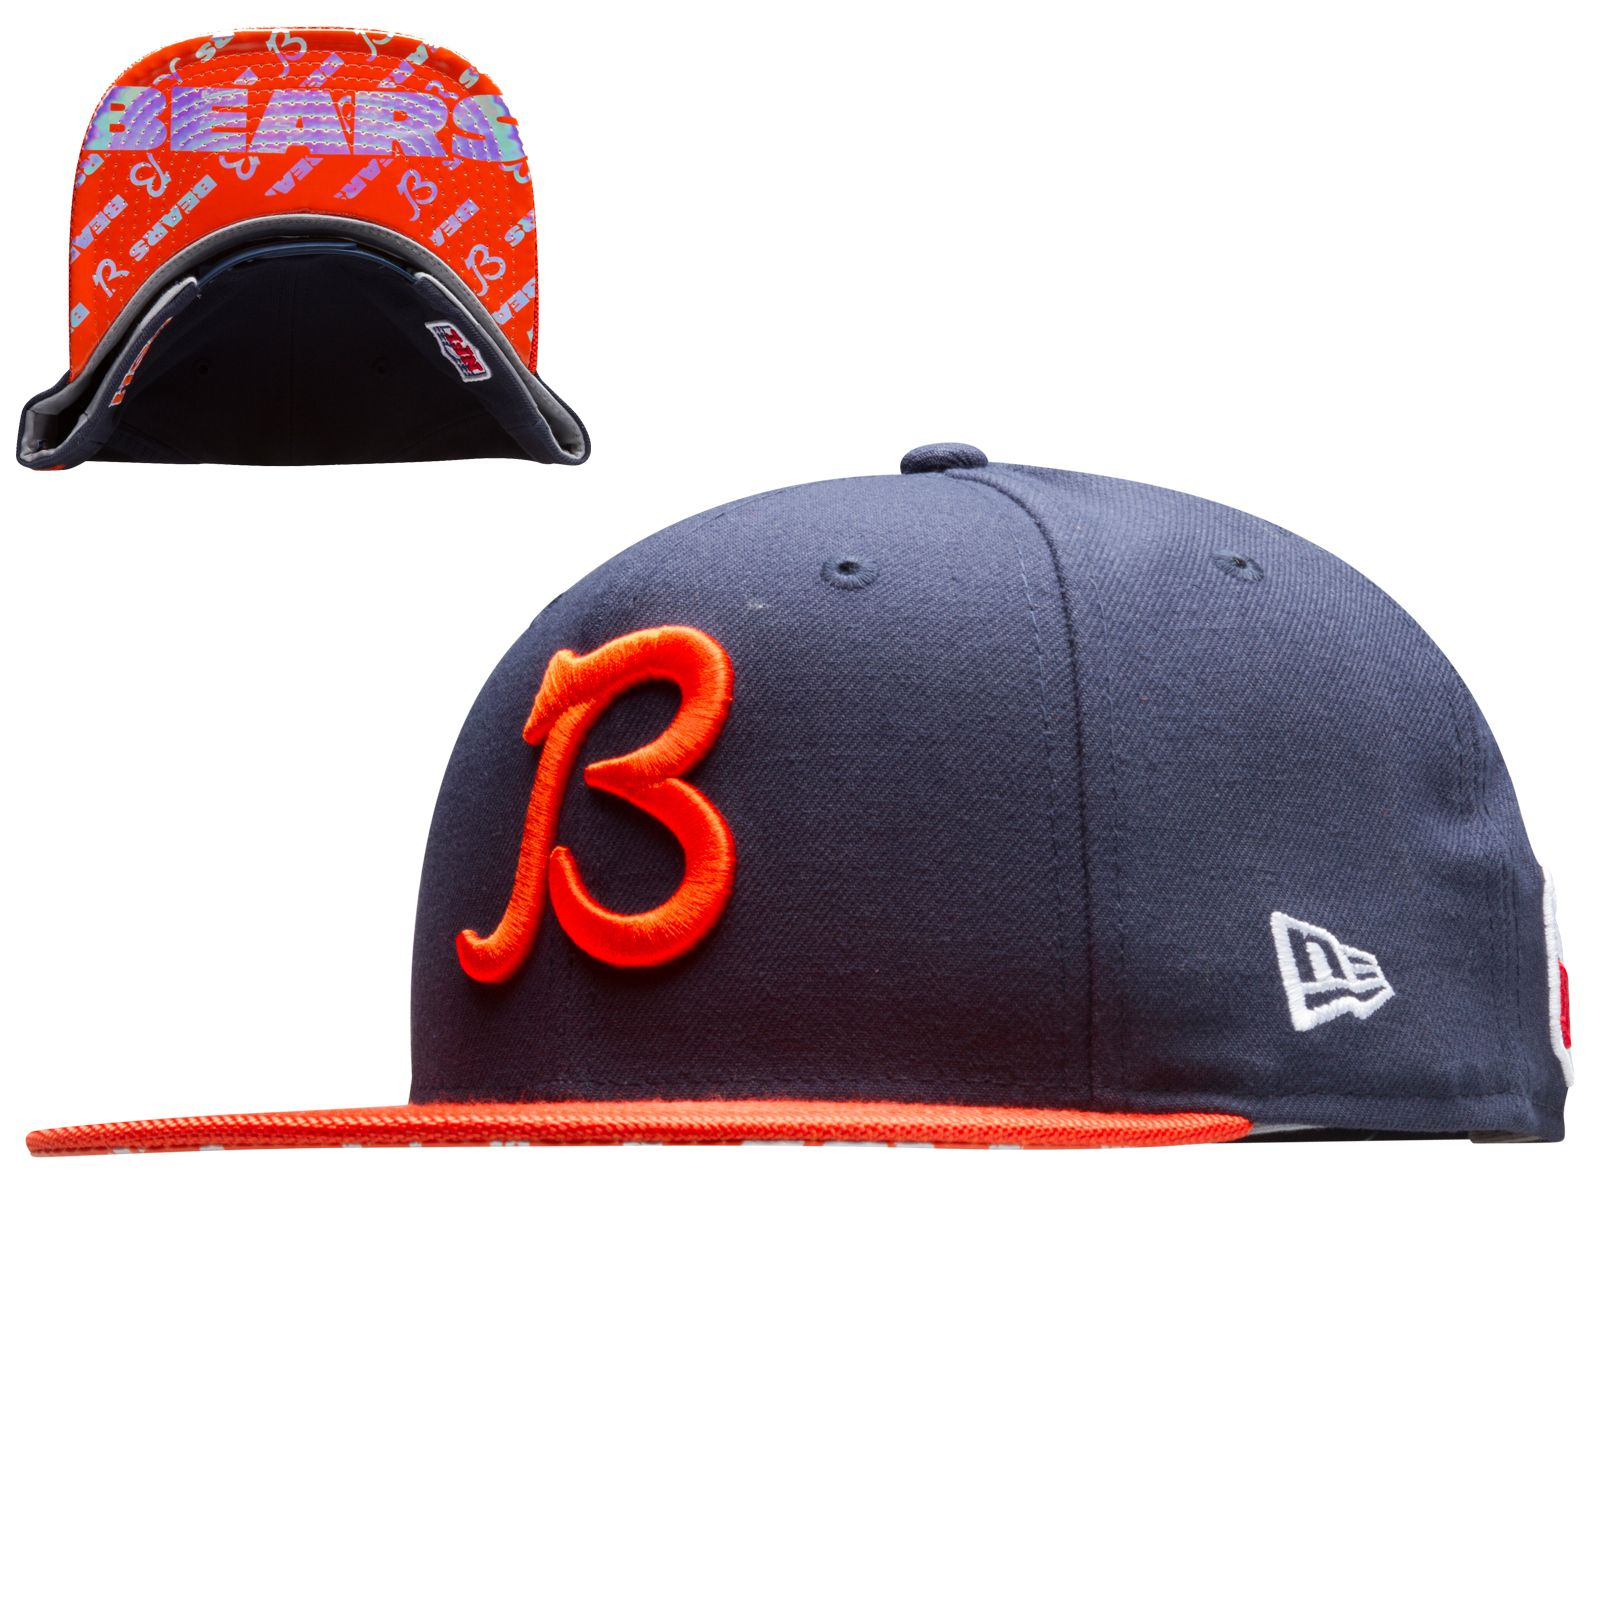 a86deb073cddca Chicago Bears Navy and Orange